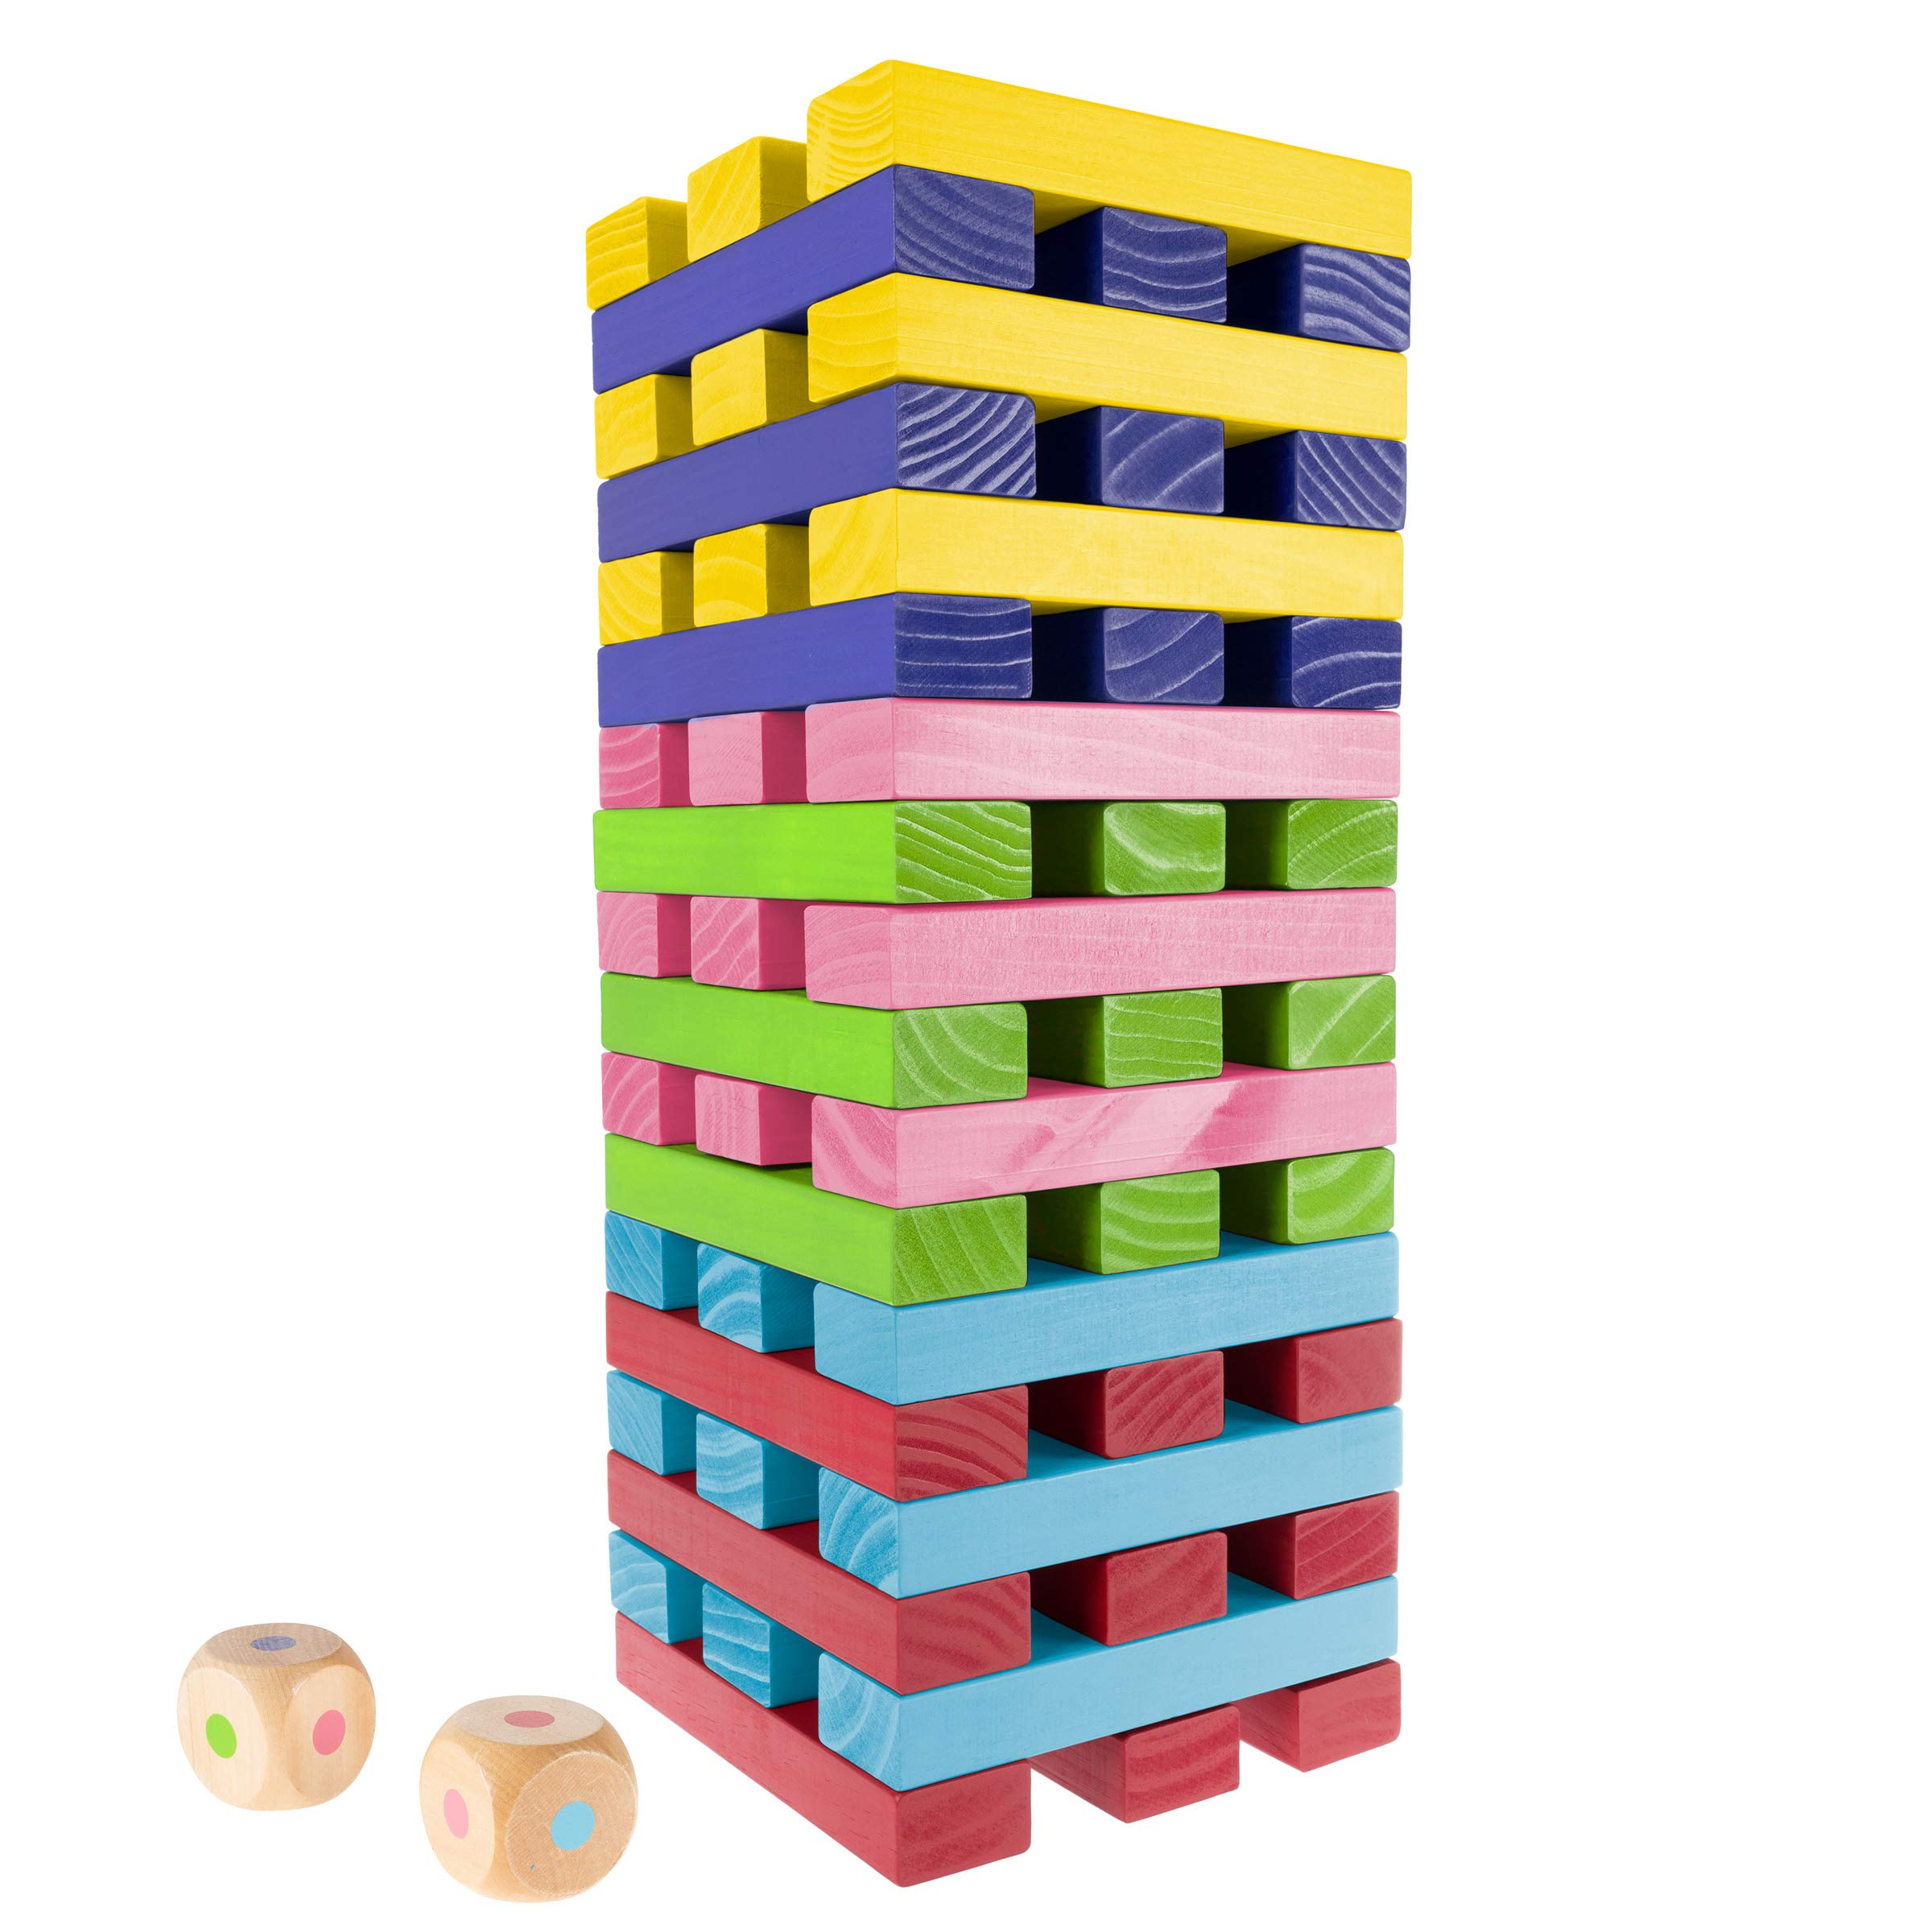 Hey! Play! Nontraditional Giant Wooden Blocks Tower Stacking Game with Dice, Outdoor Yd Game, for Adults, Kids, Boys & Girls (Rainbow Color)